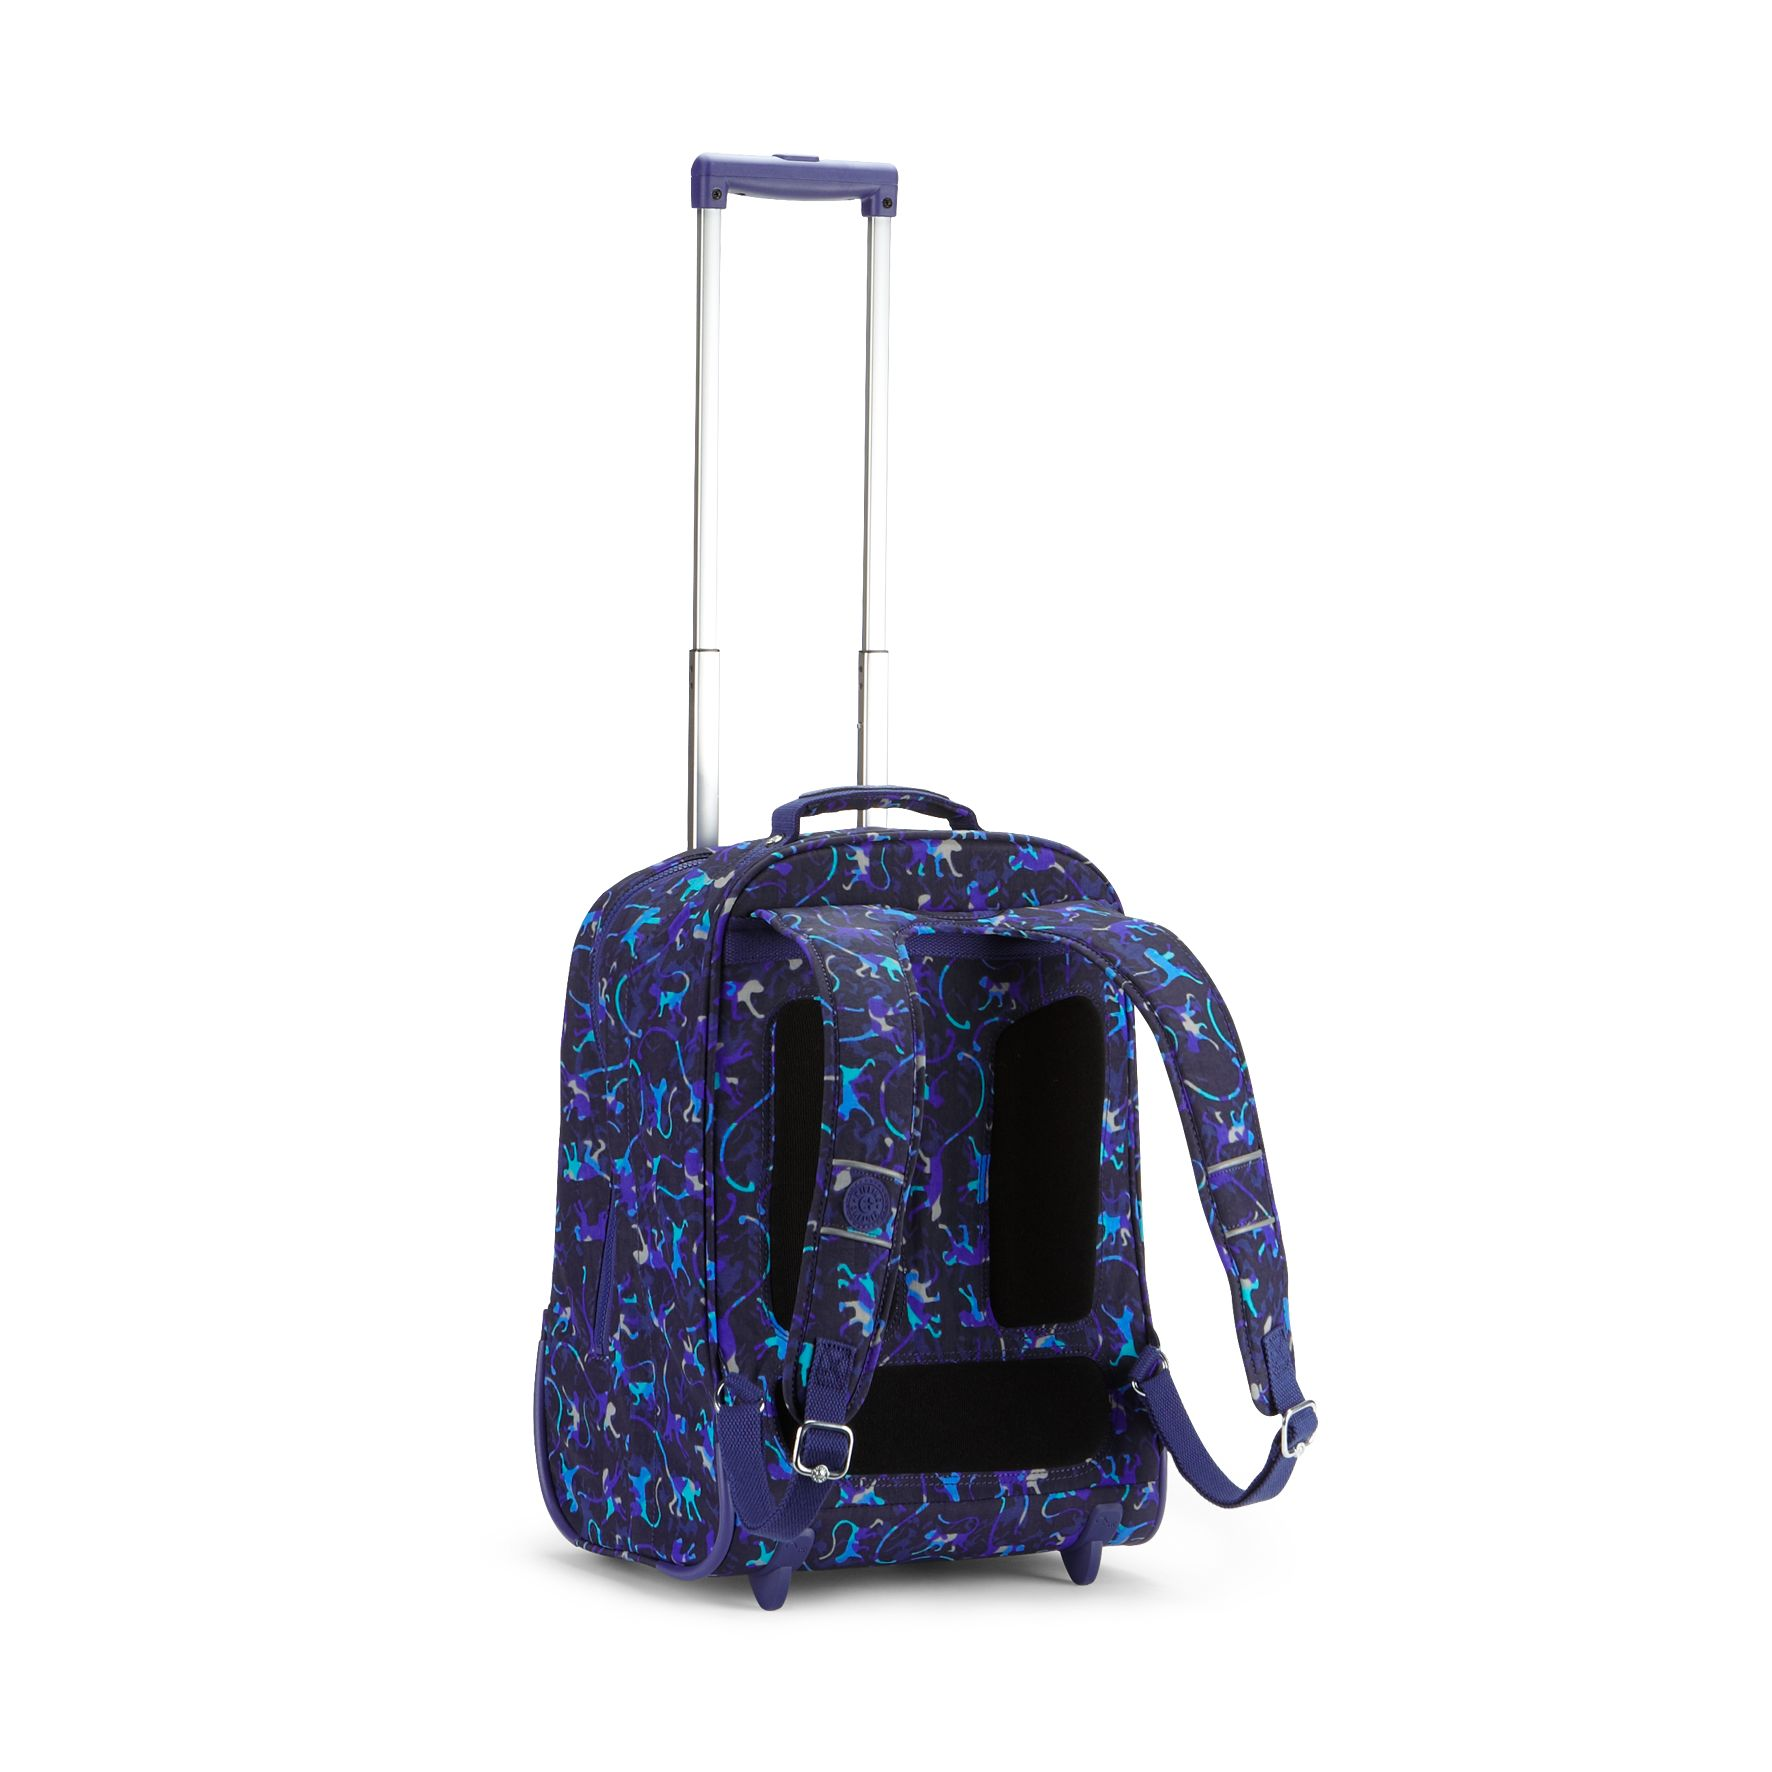 Clas soobin large wheeled backpack